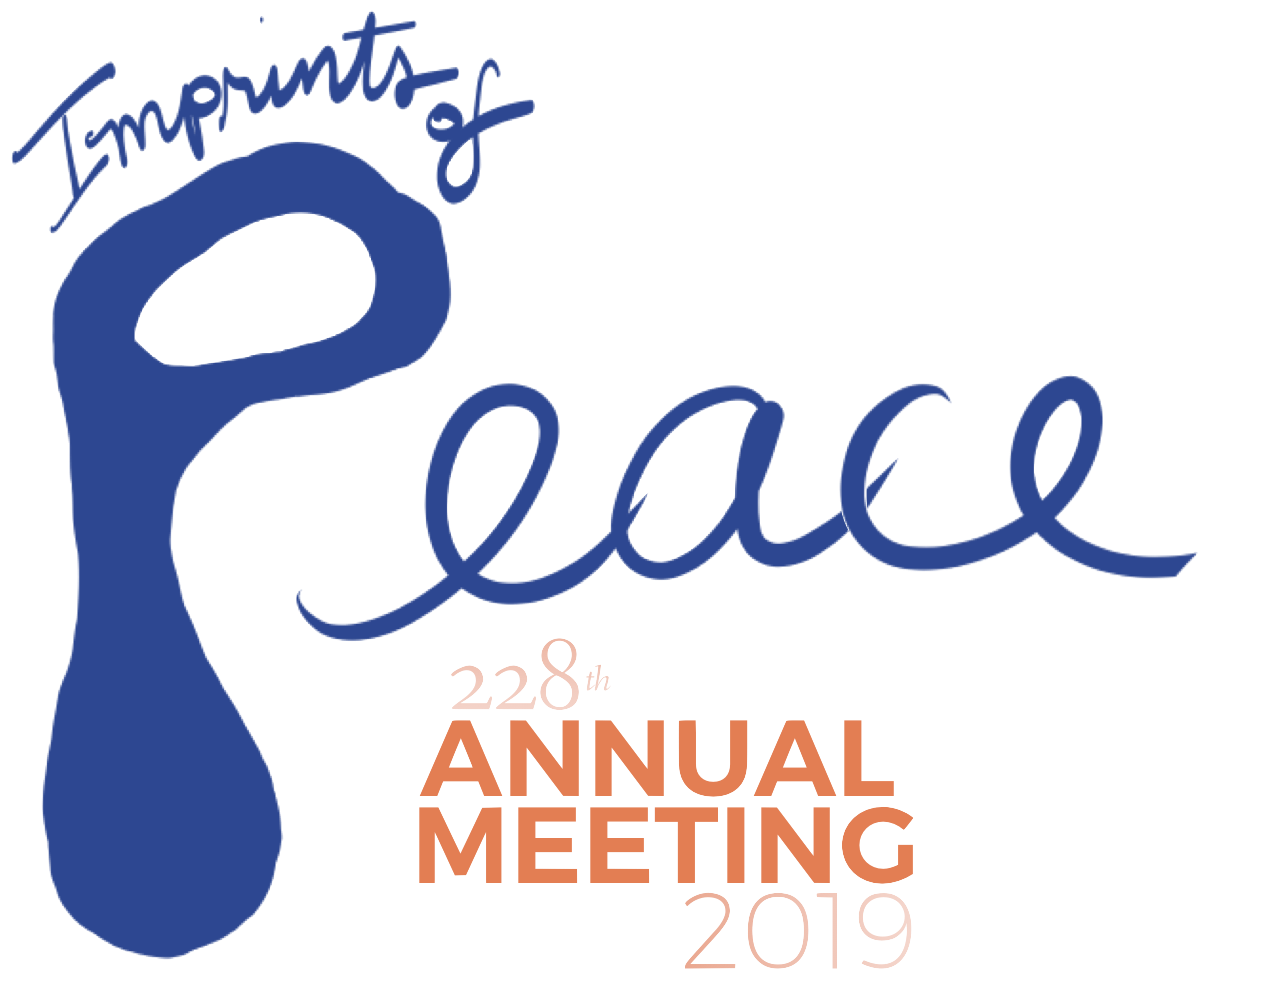 Annual Meeting 2019 mark draft-20190902.png